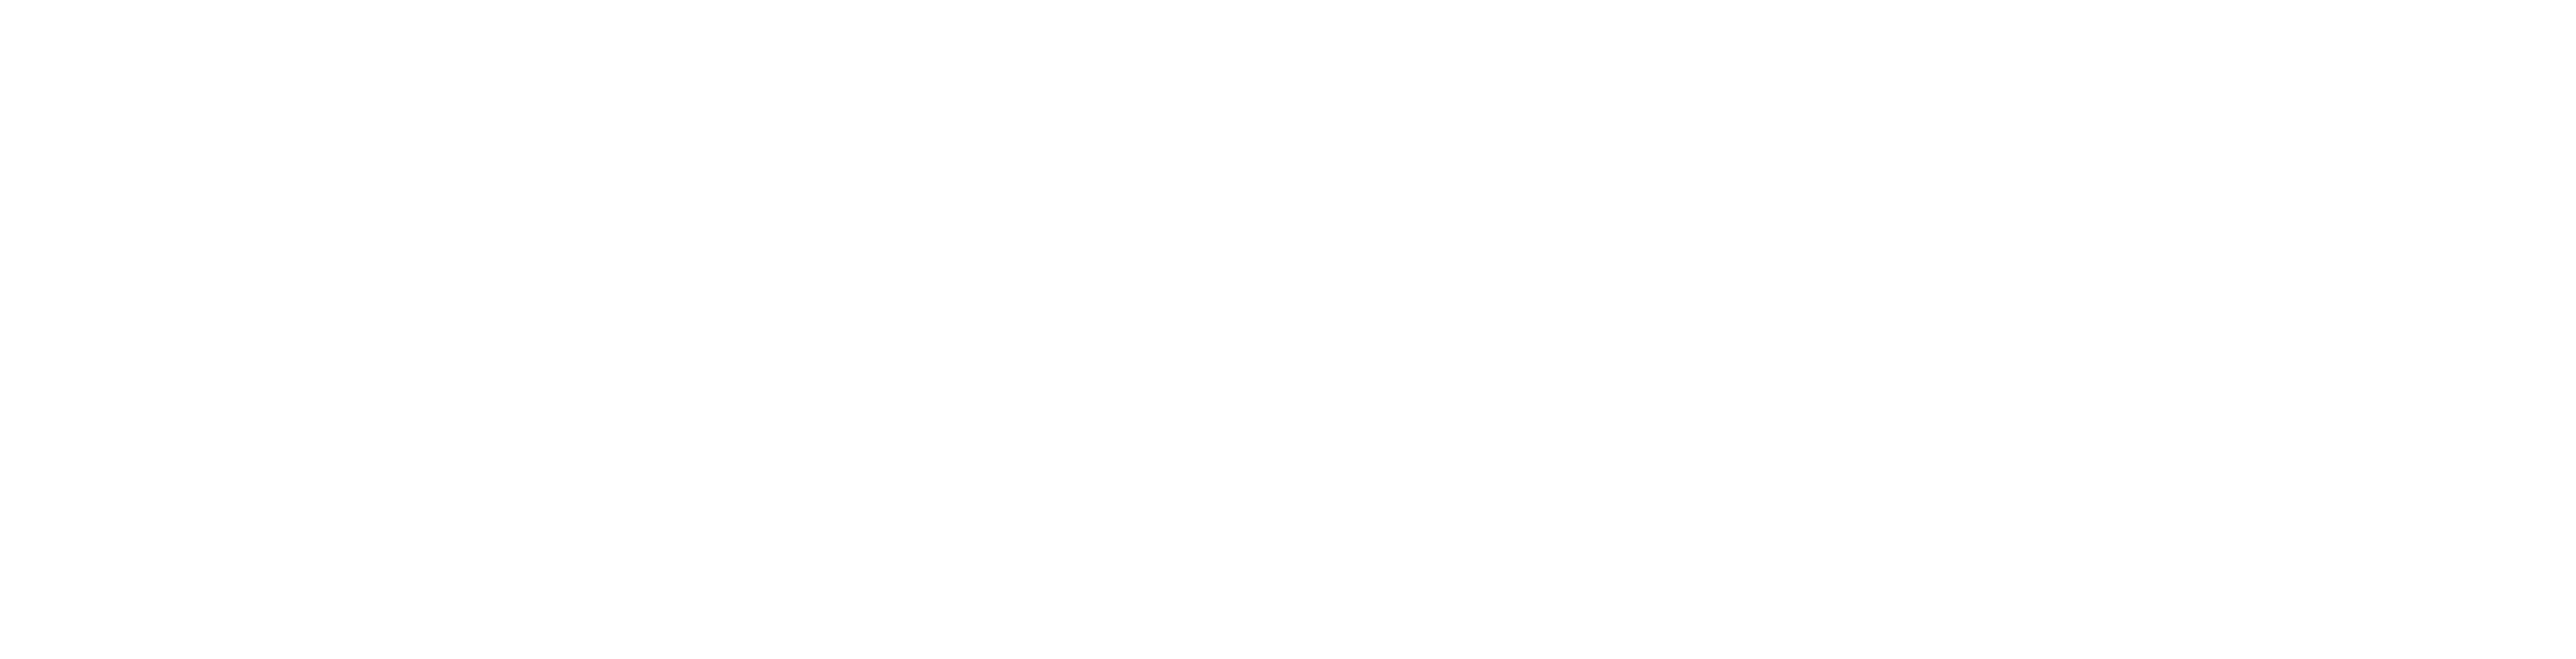 European Youth Card Association logo